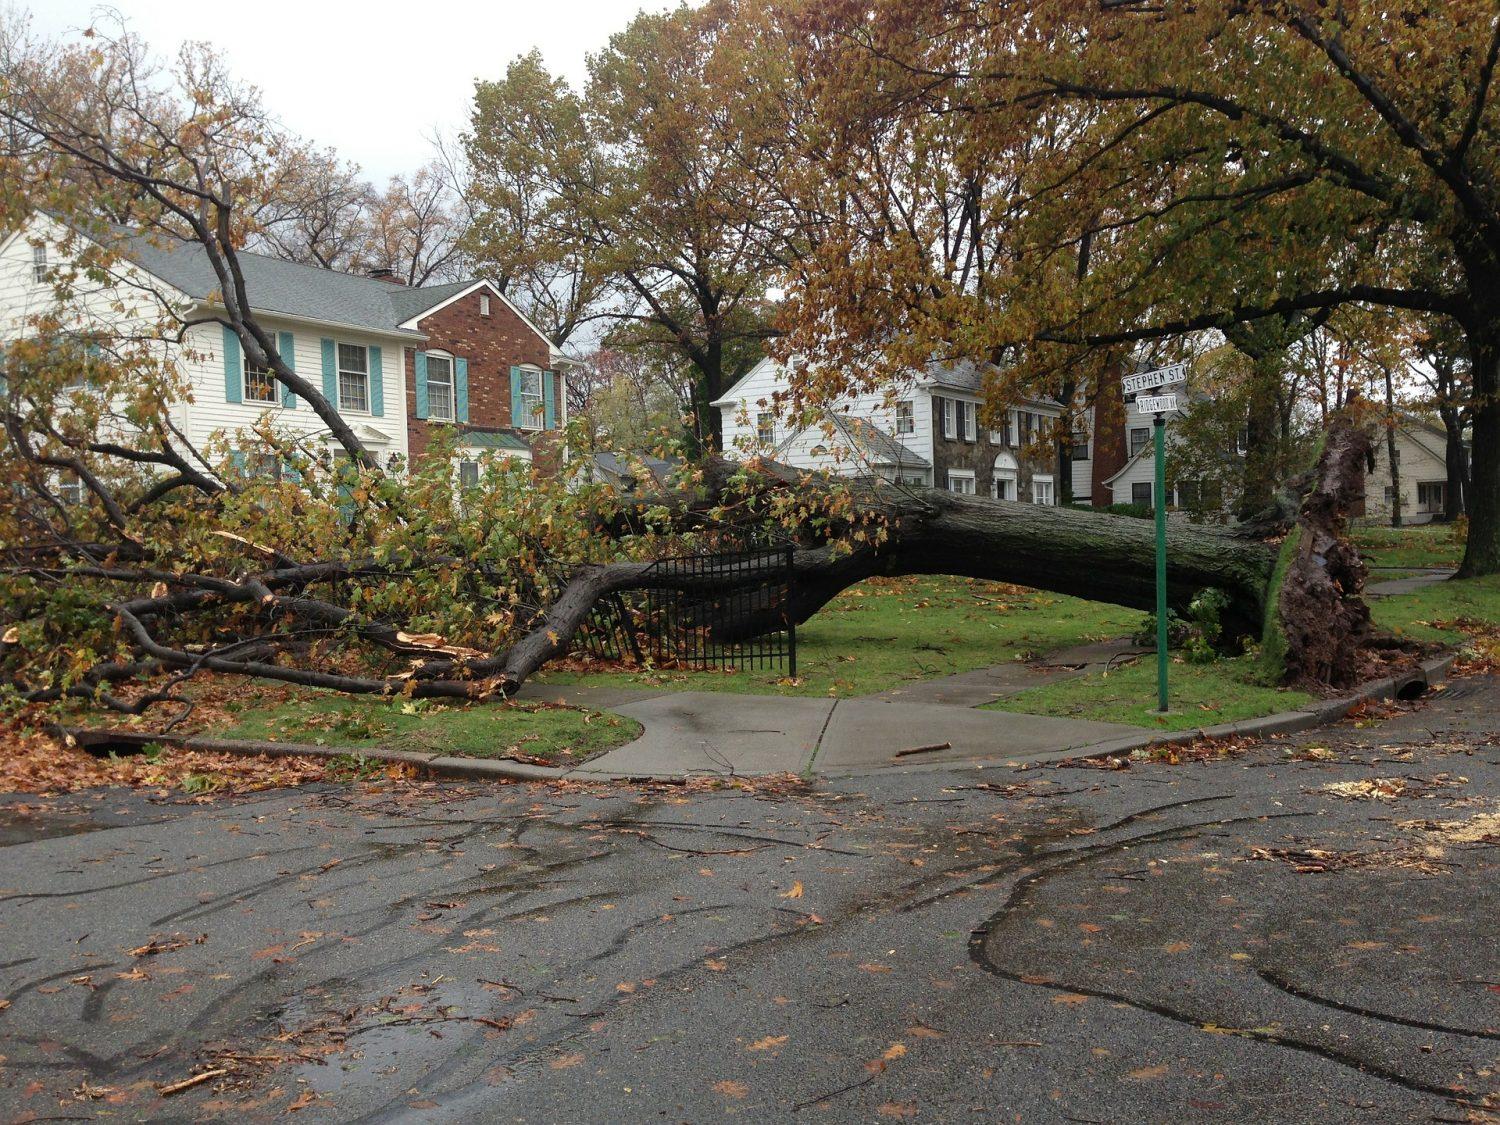 picture of large tree uprooted in front of houses